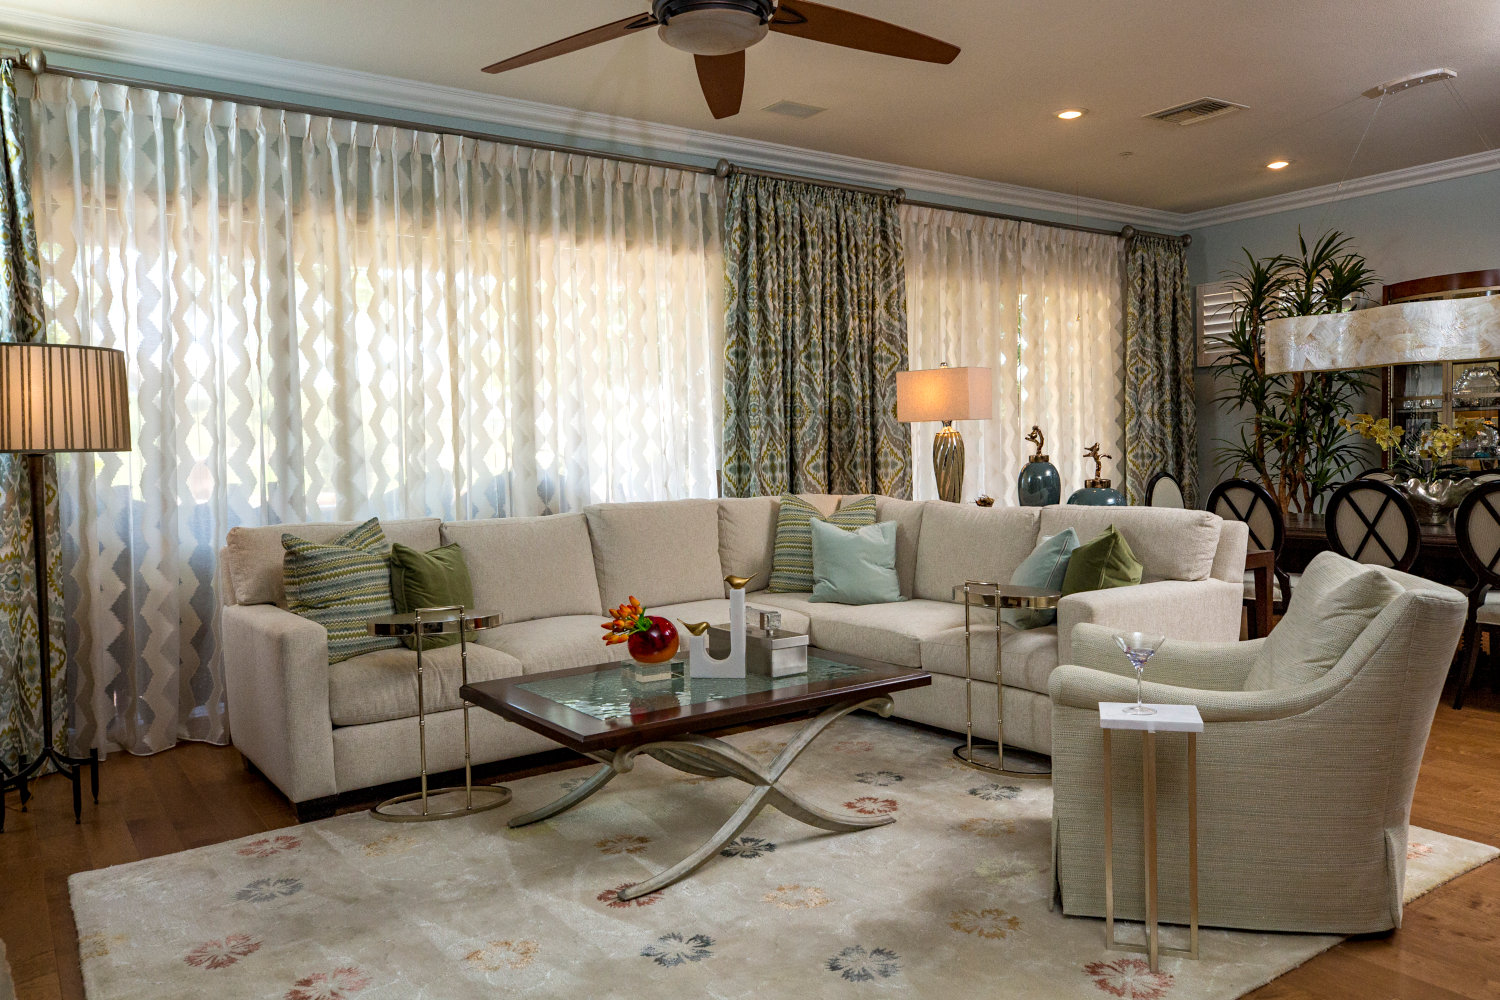 Bright, traditionally styled family room, cream colored sectional, colorful drapes with sheers.